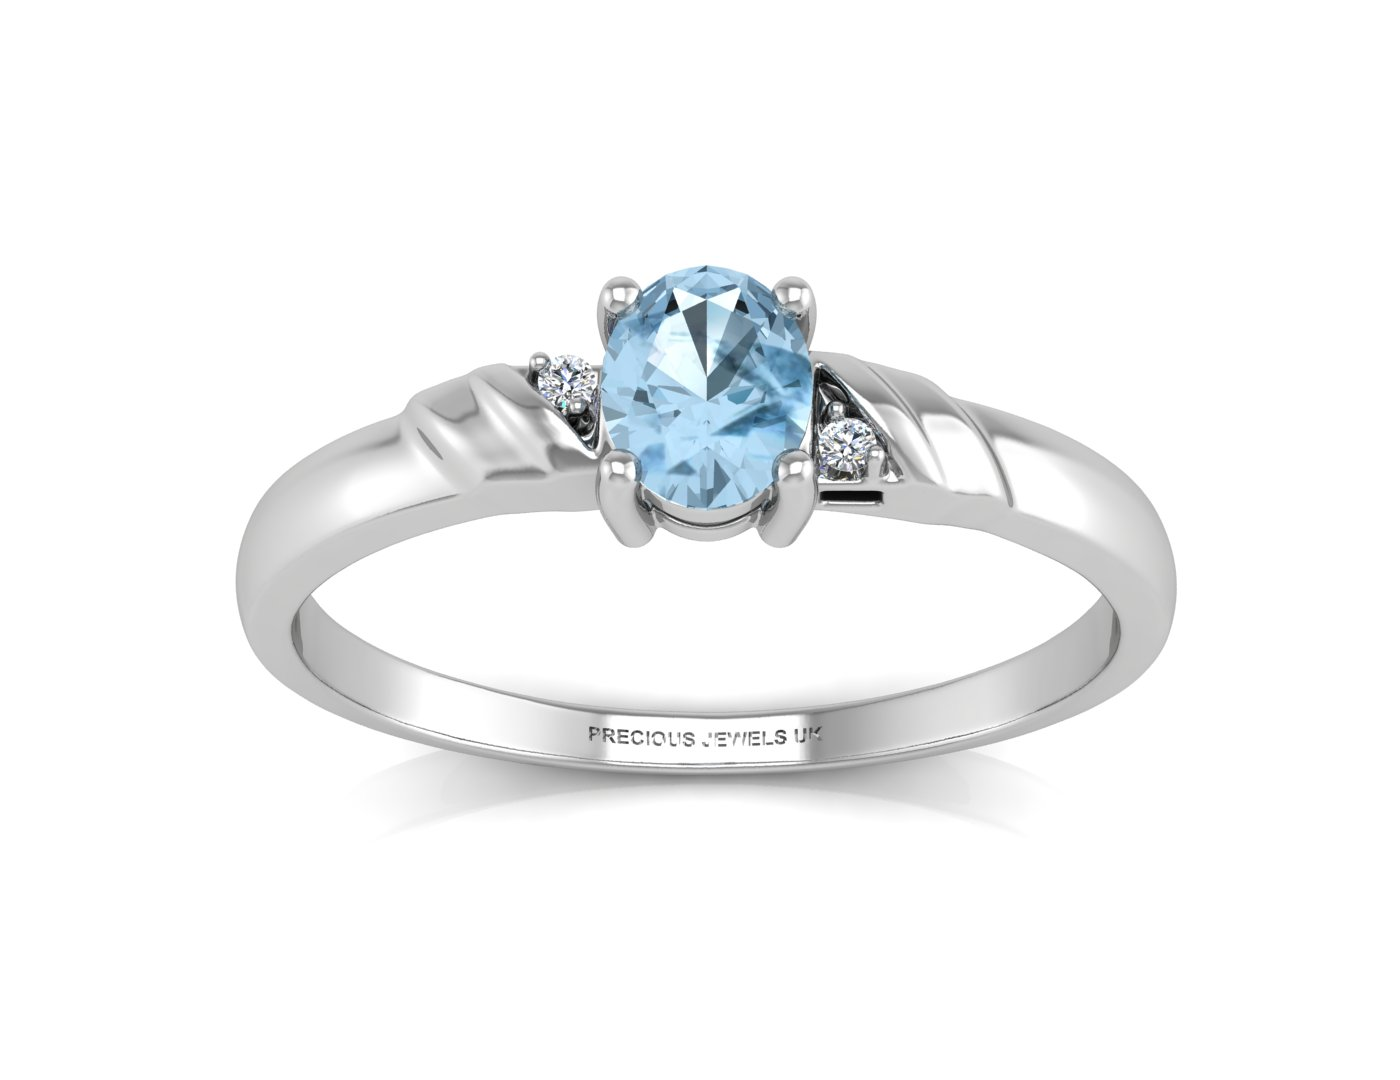 9ct White Gold Diamond And Blue Topaz Ring - Image 3 of 5